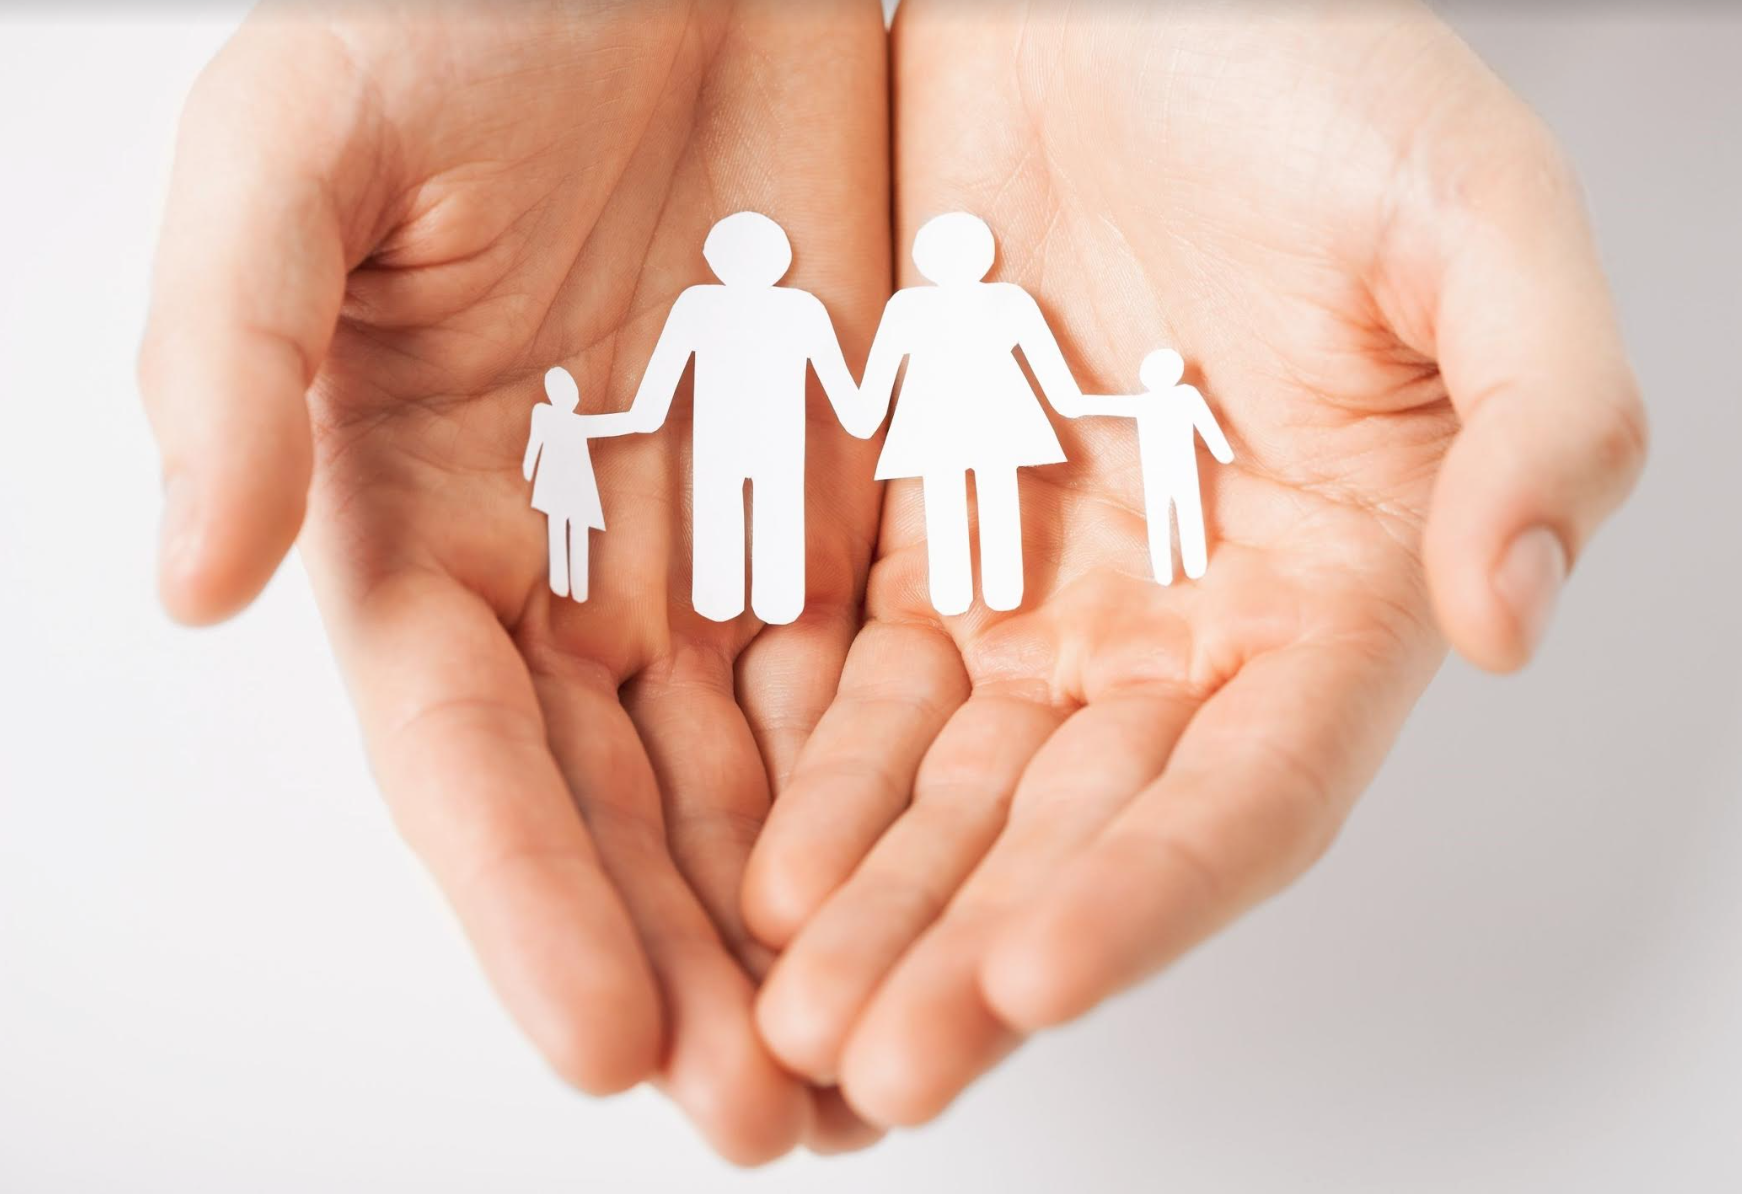 Your Family is in Your Hands